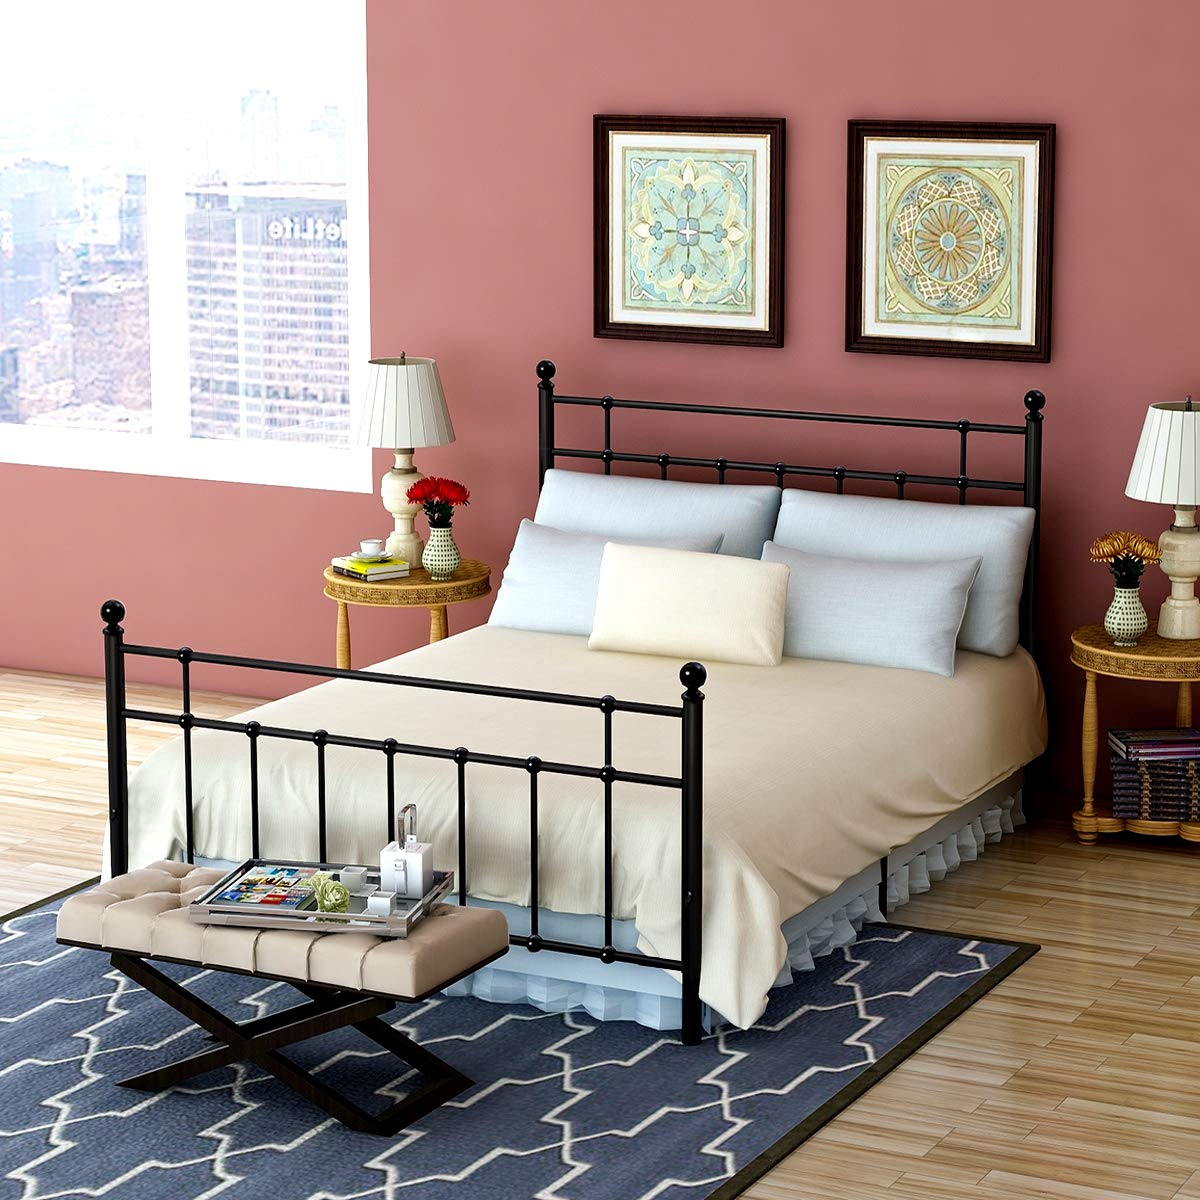 Metal Bed Frame with Steel Headboard and Footboard Slat Platform Mattress Foundation Double beds Box Spring No Assembly Double Beds Spring Replacement for Kids Adult Victorian Style Black Full Size